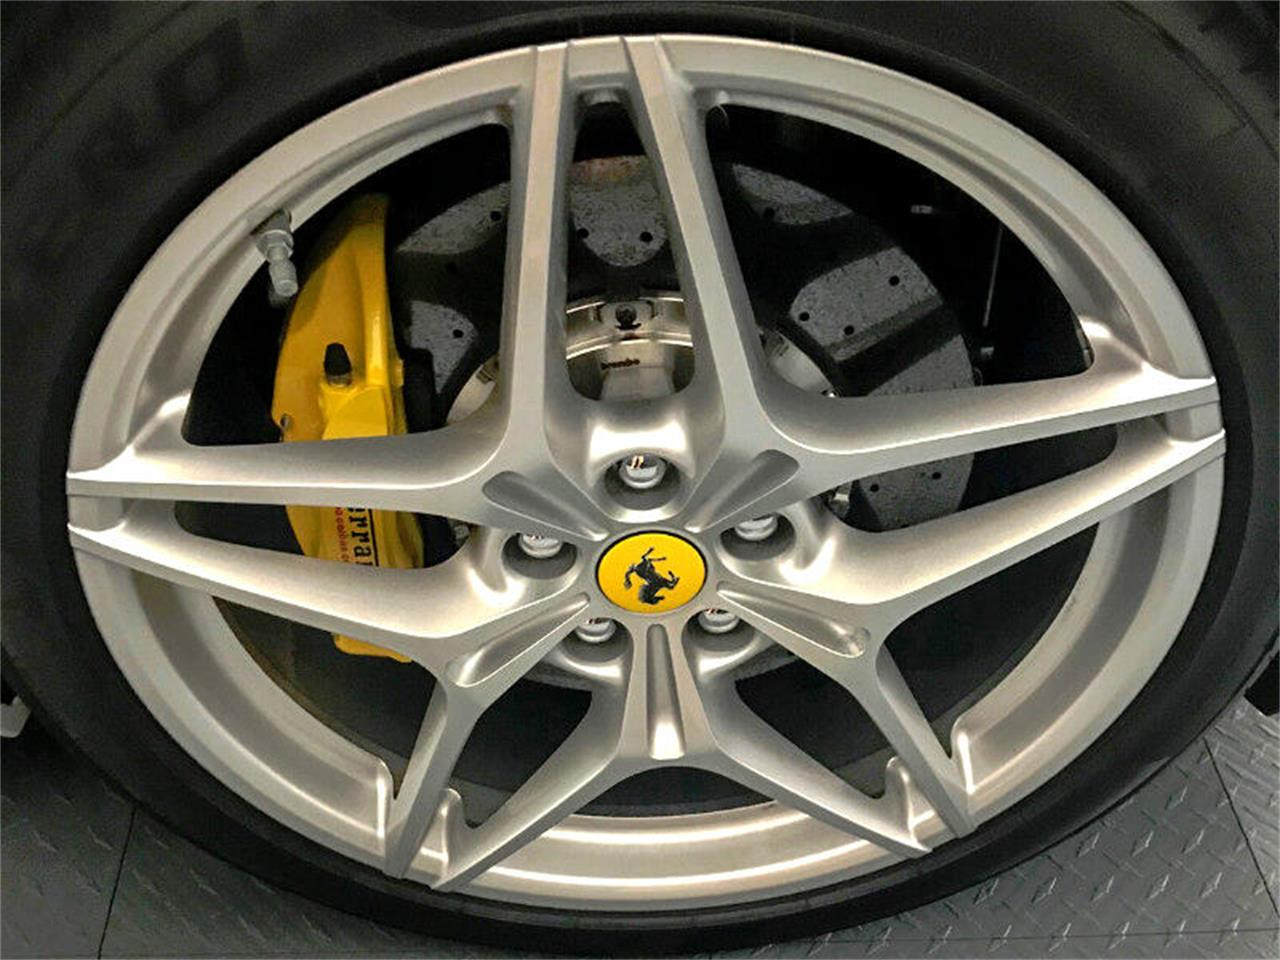 2017 Ferrari California (CC-1222871) for sale in Anaheim, California